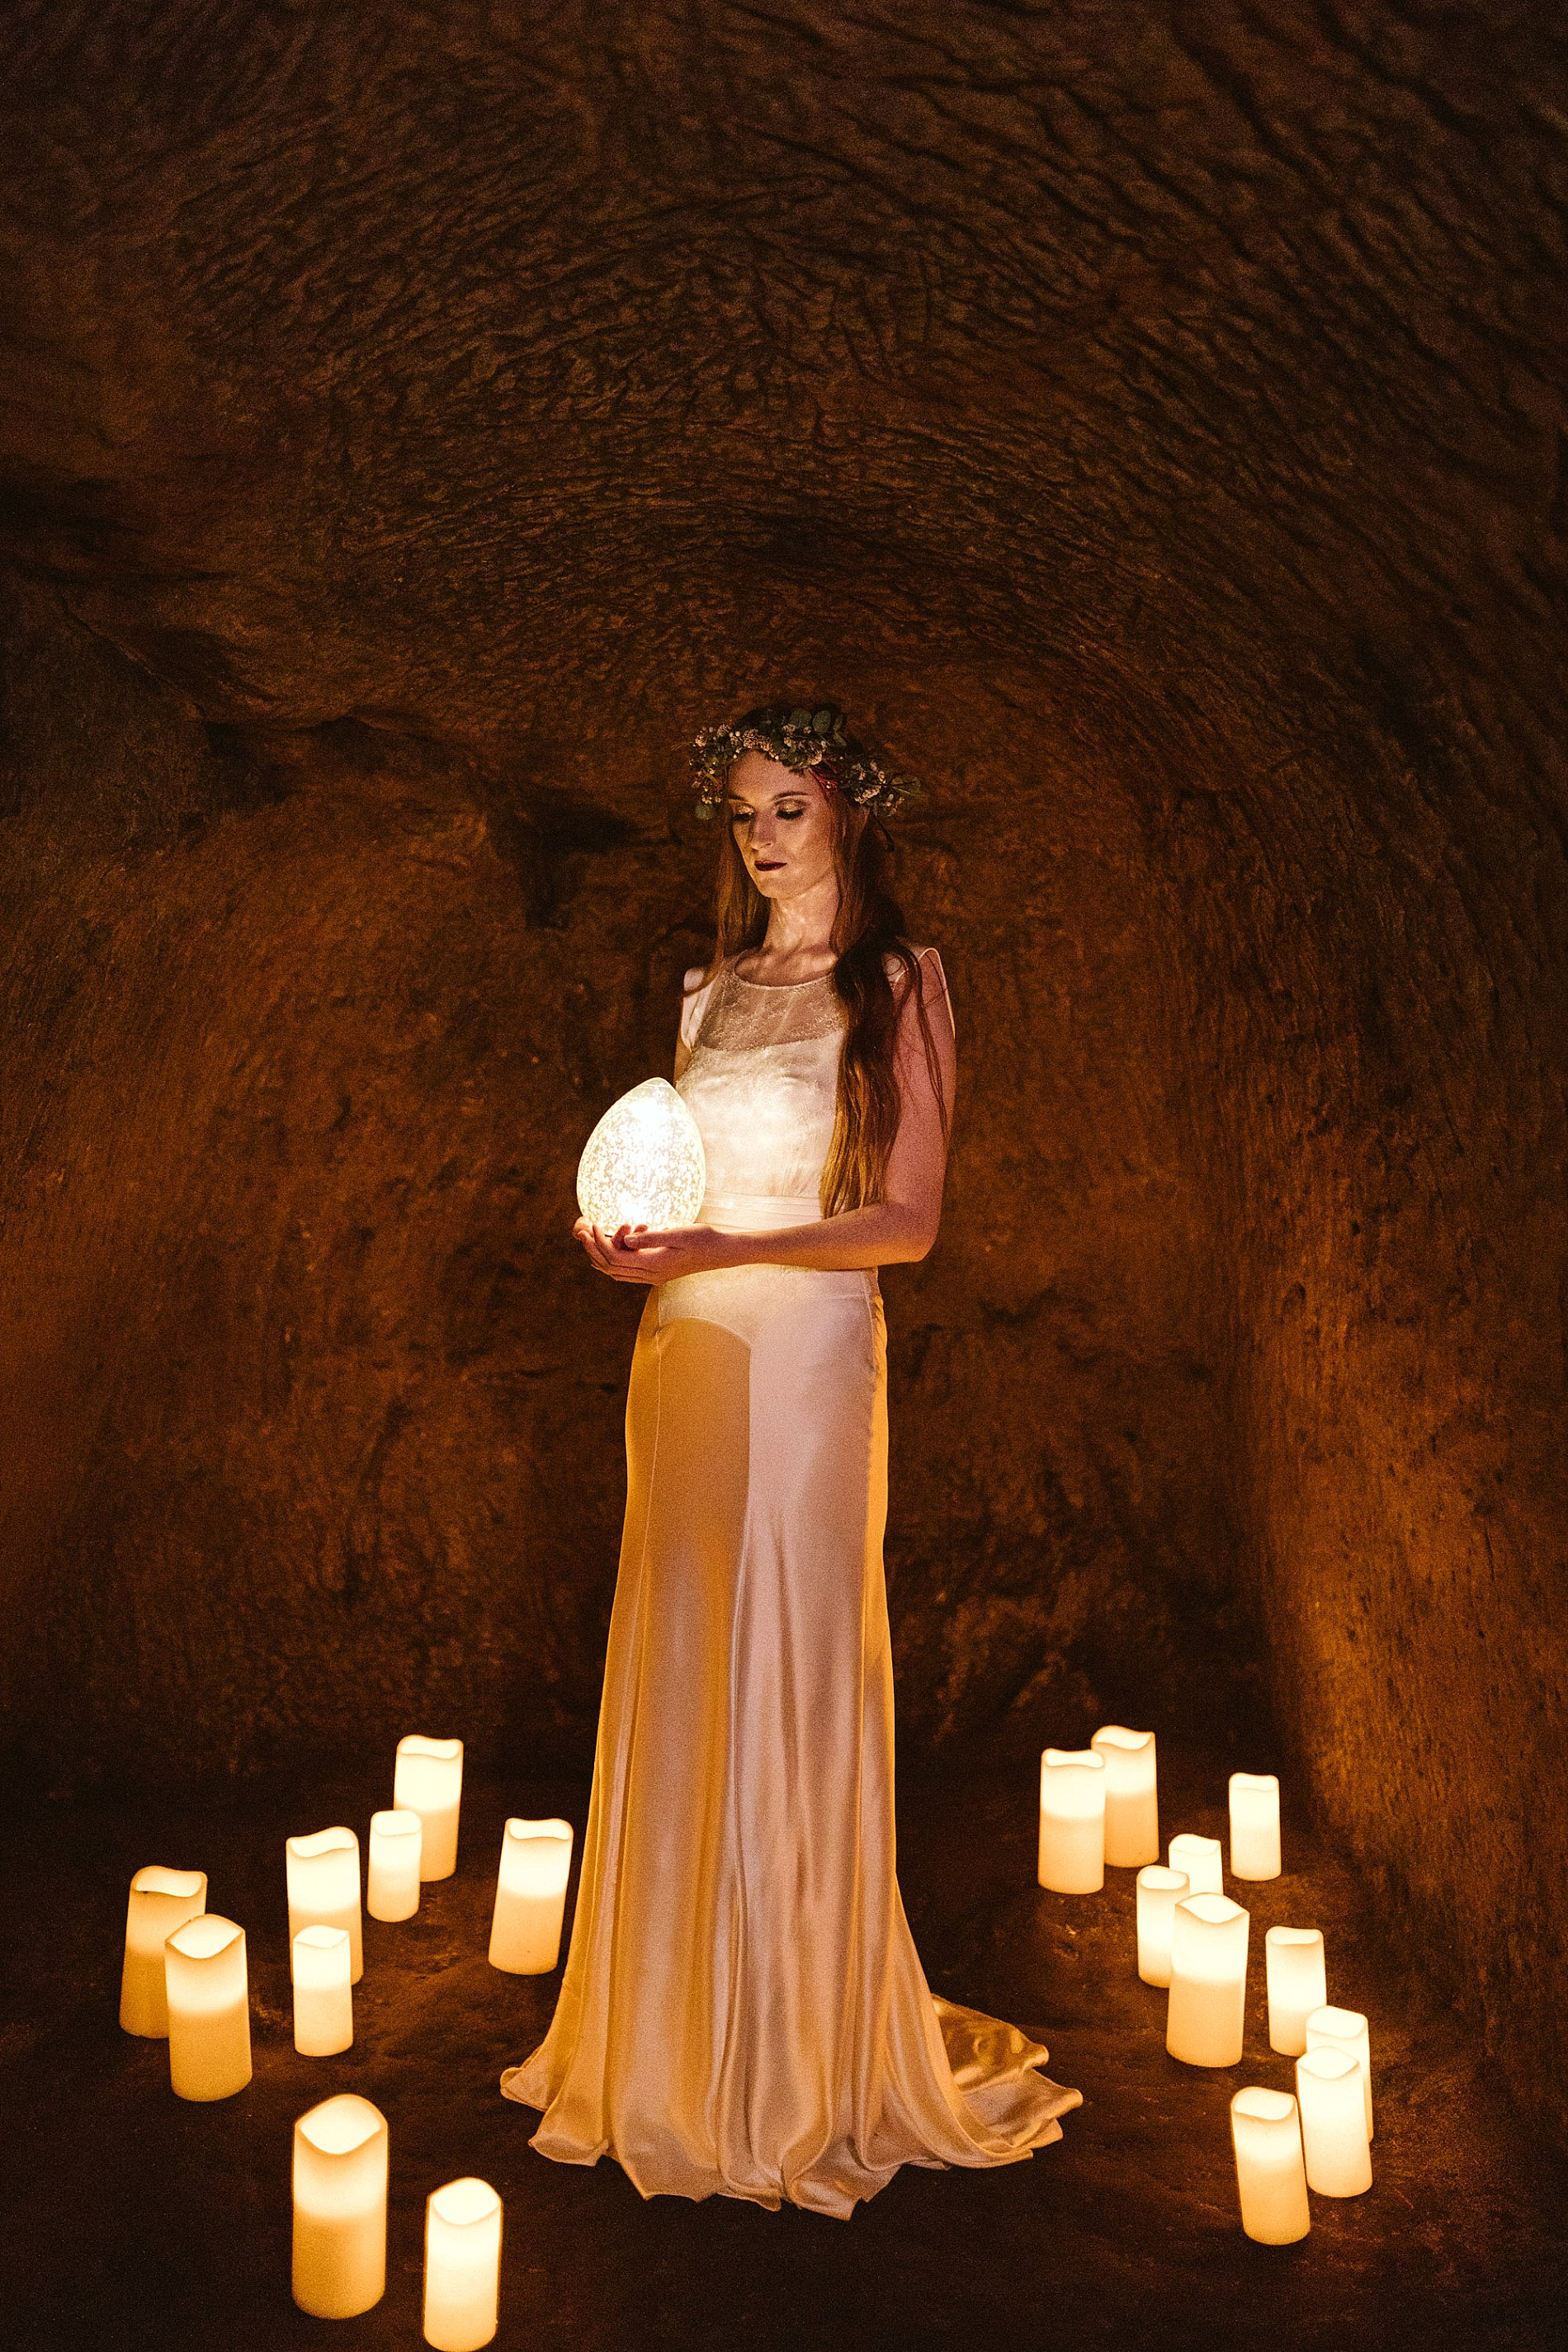 Game of Thrones Creative Bridal Shoot (c) Freya Raby (27)